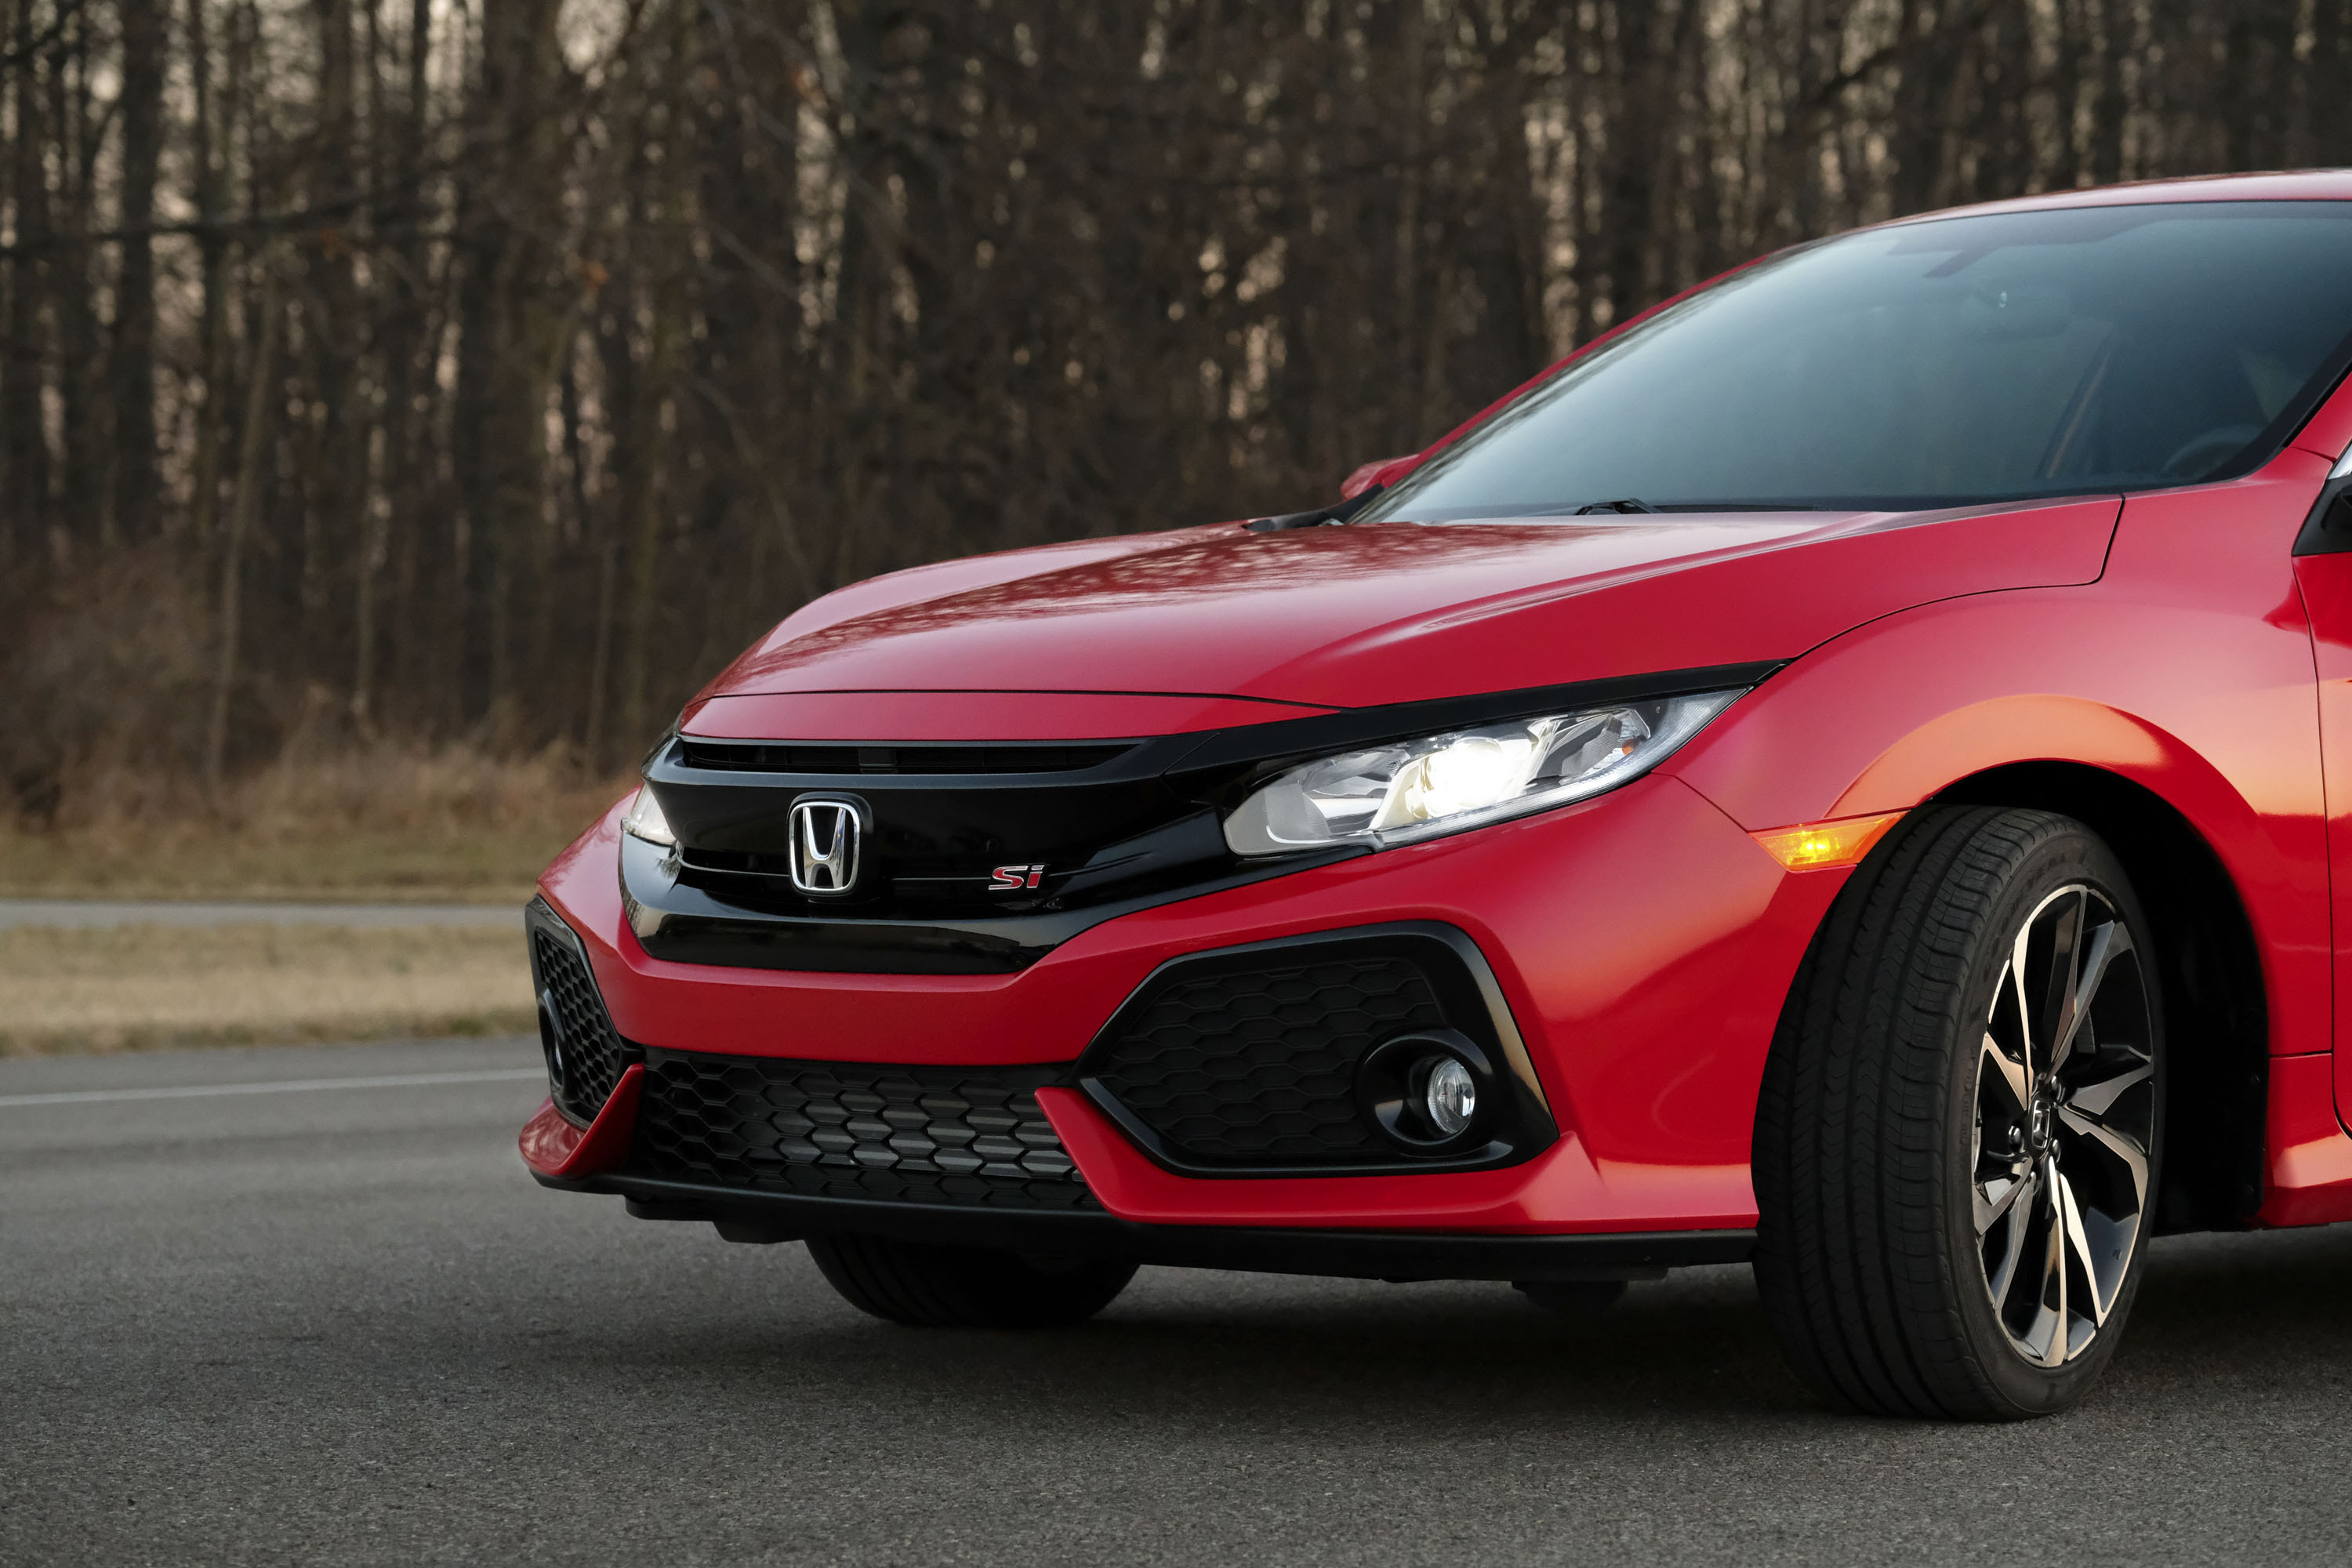 2018 Honda Civic Si Coupe | Top Speed. »